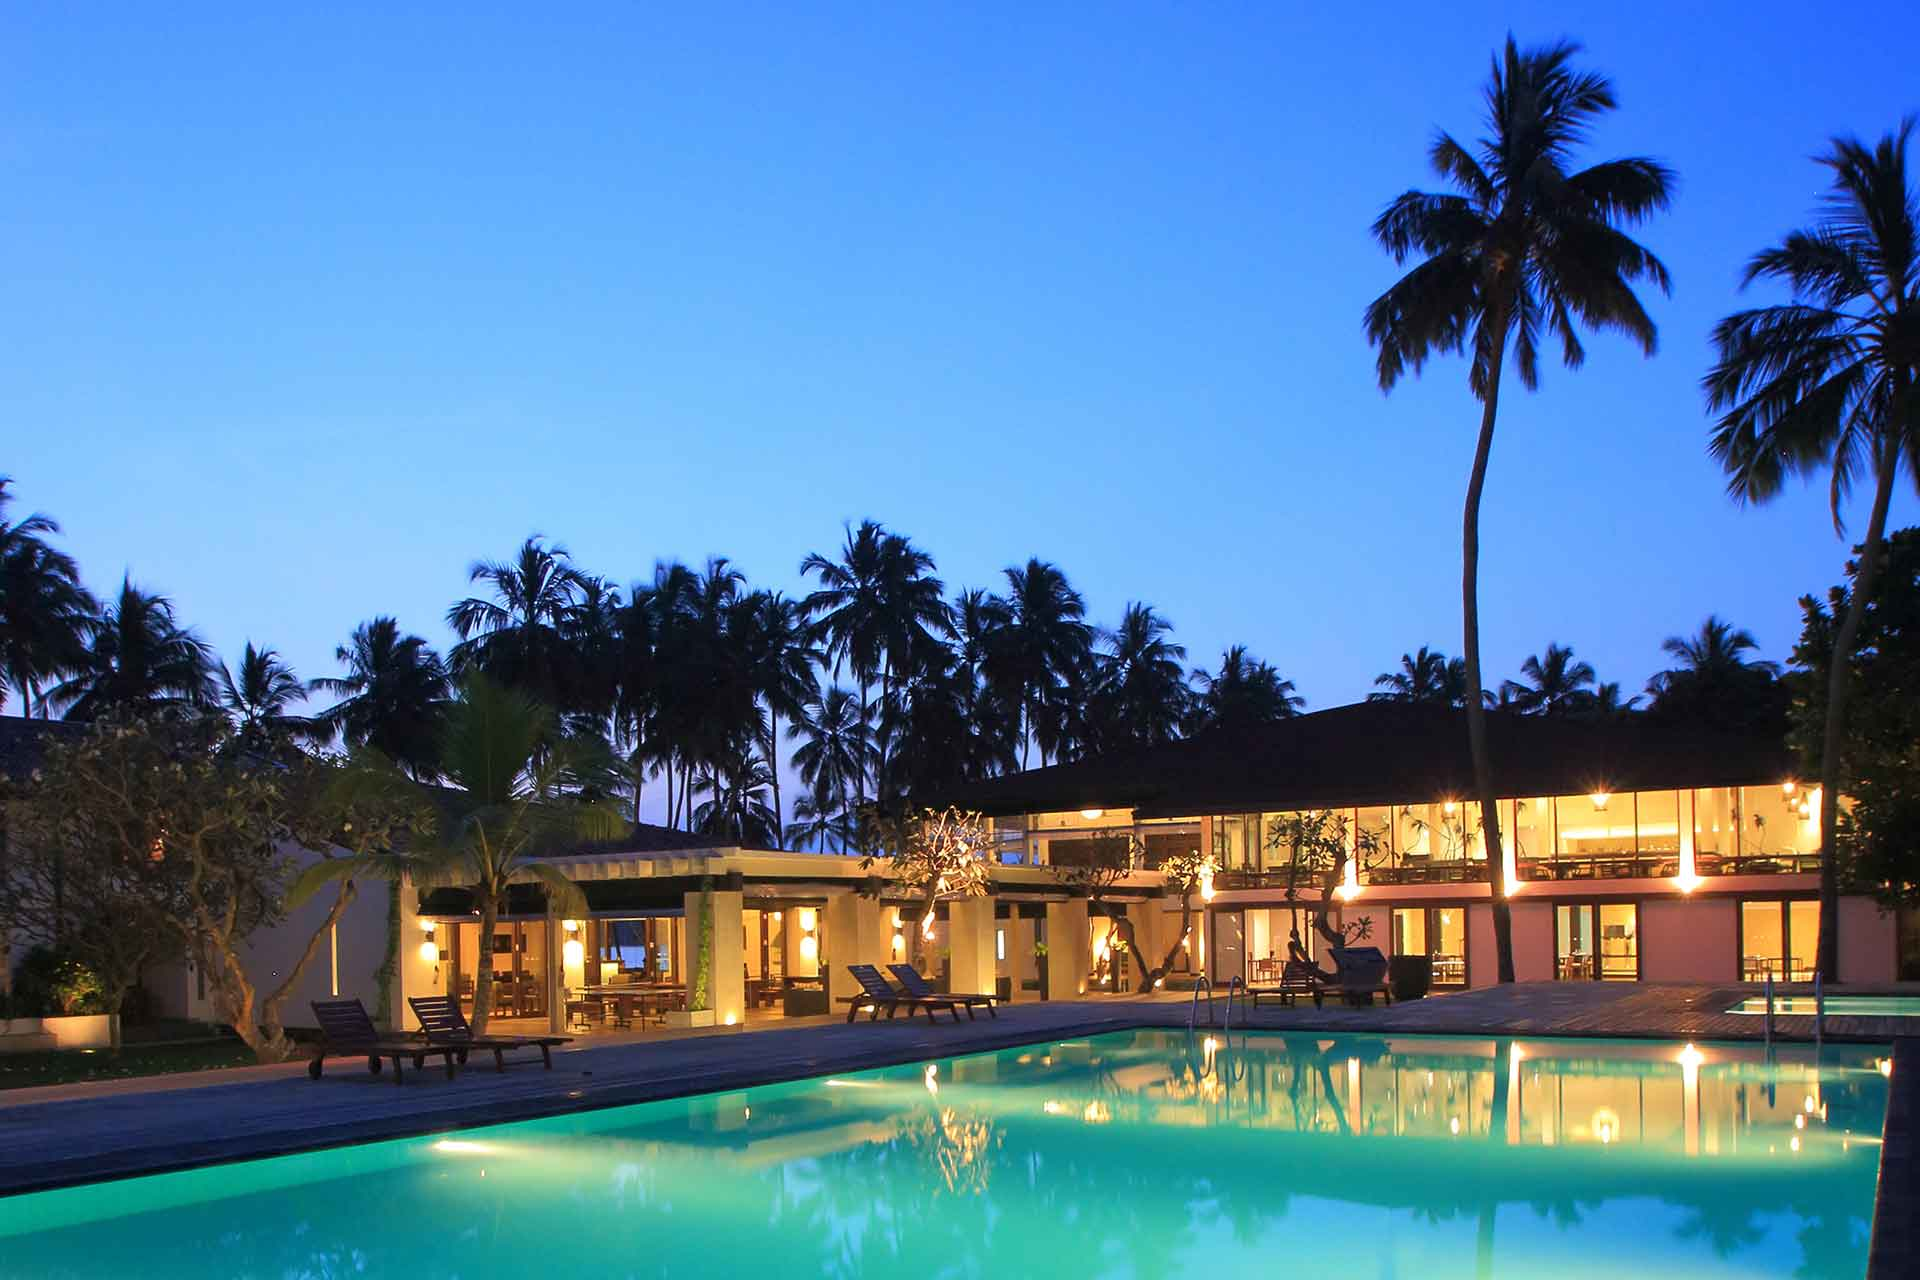 View of the AVANI Kalutara Resort pool at night